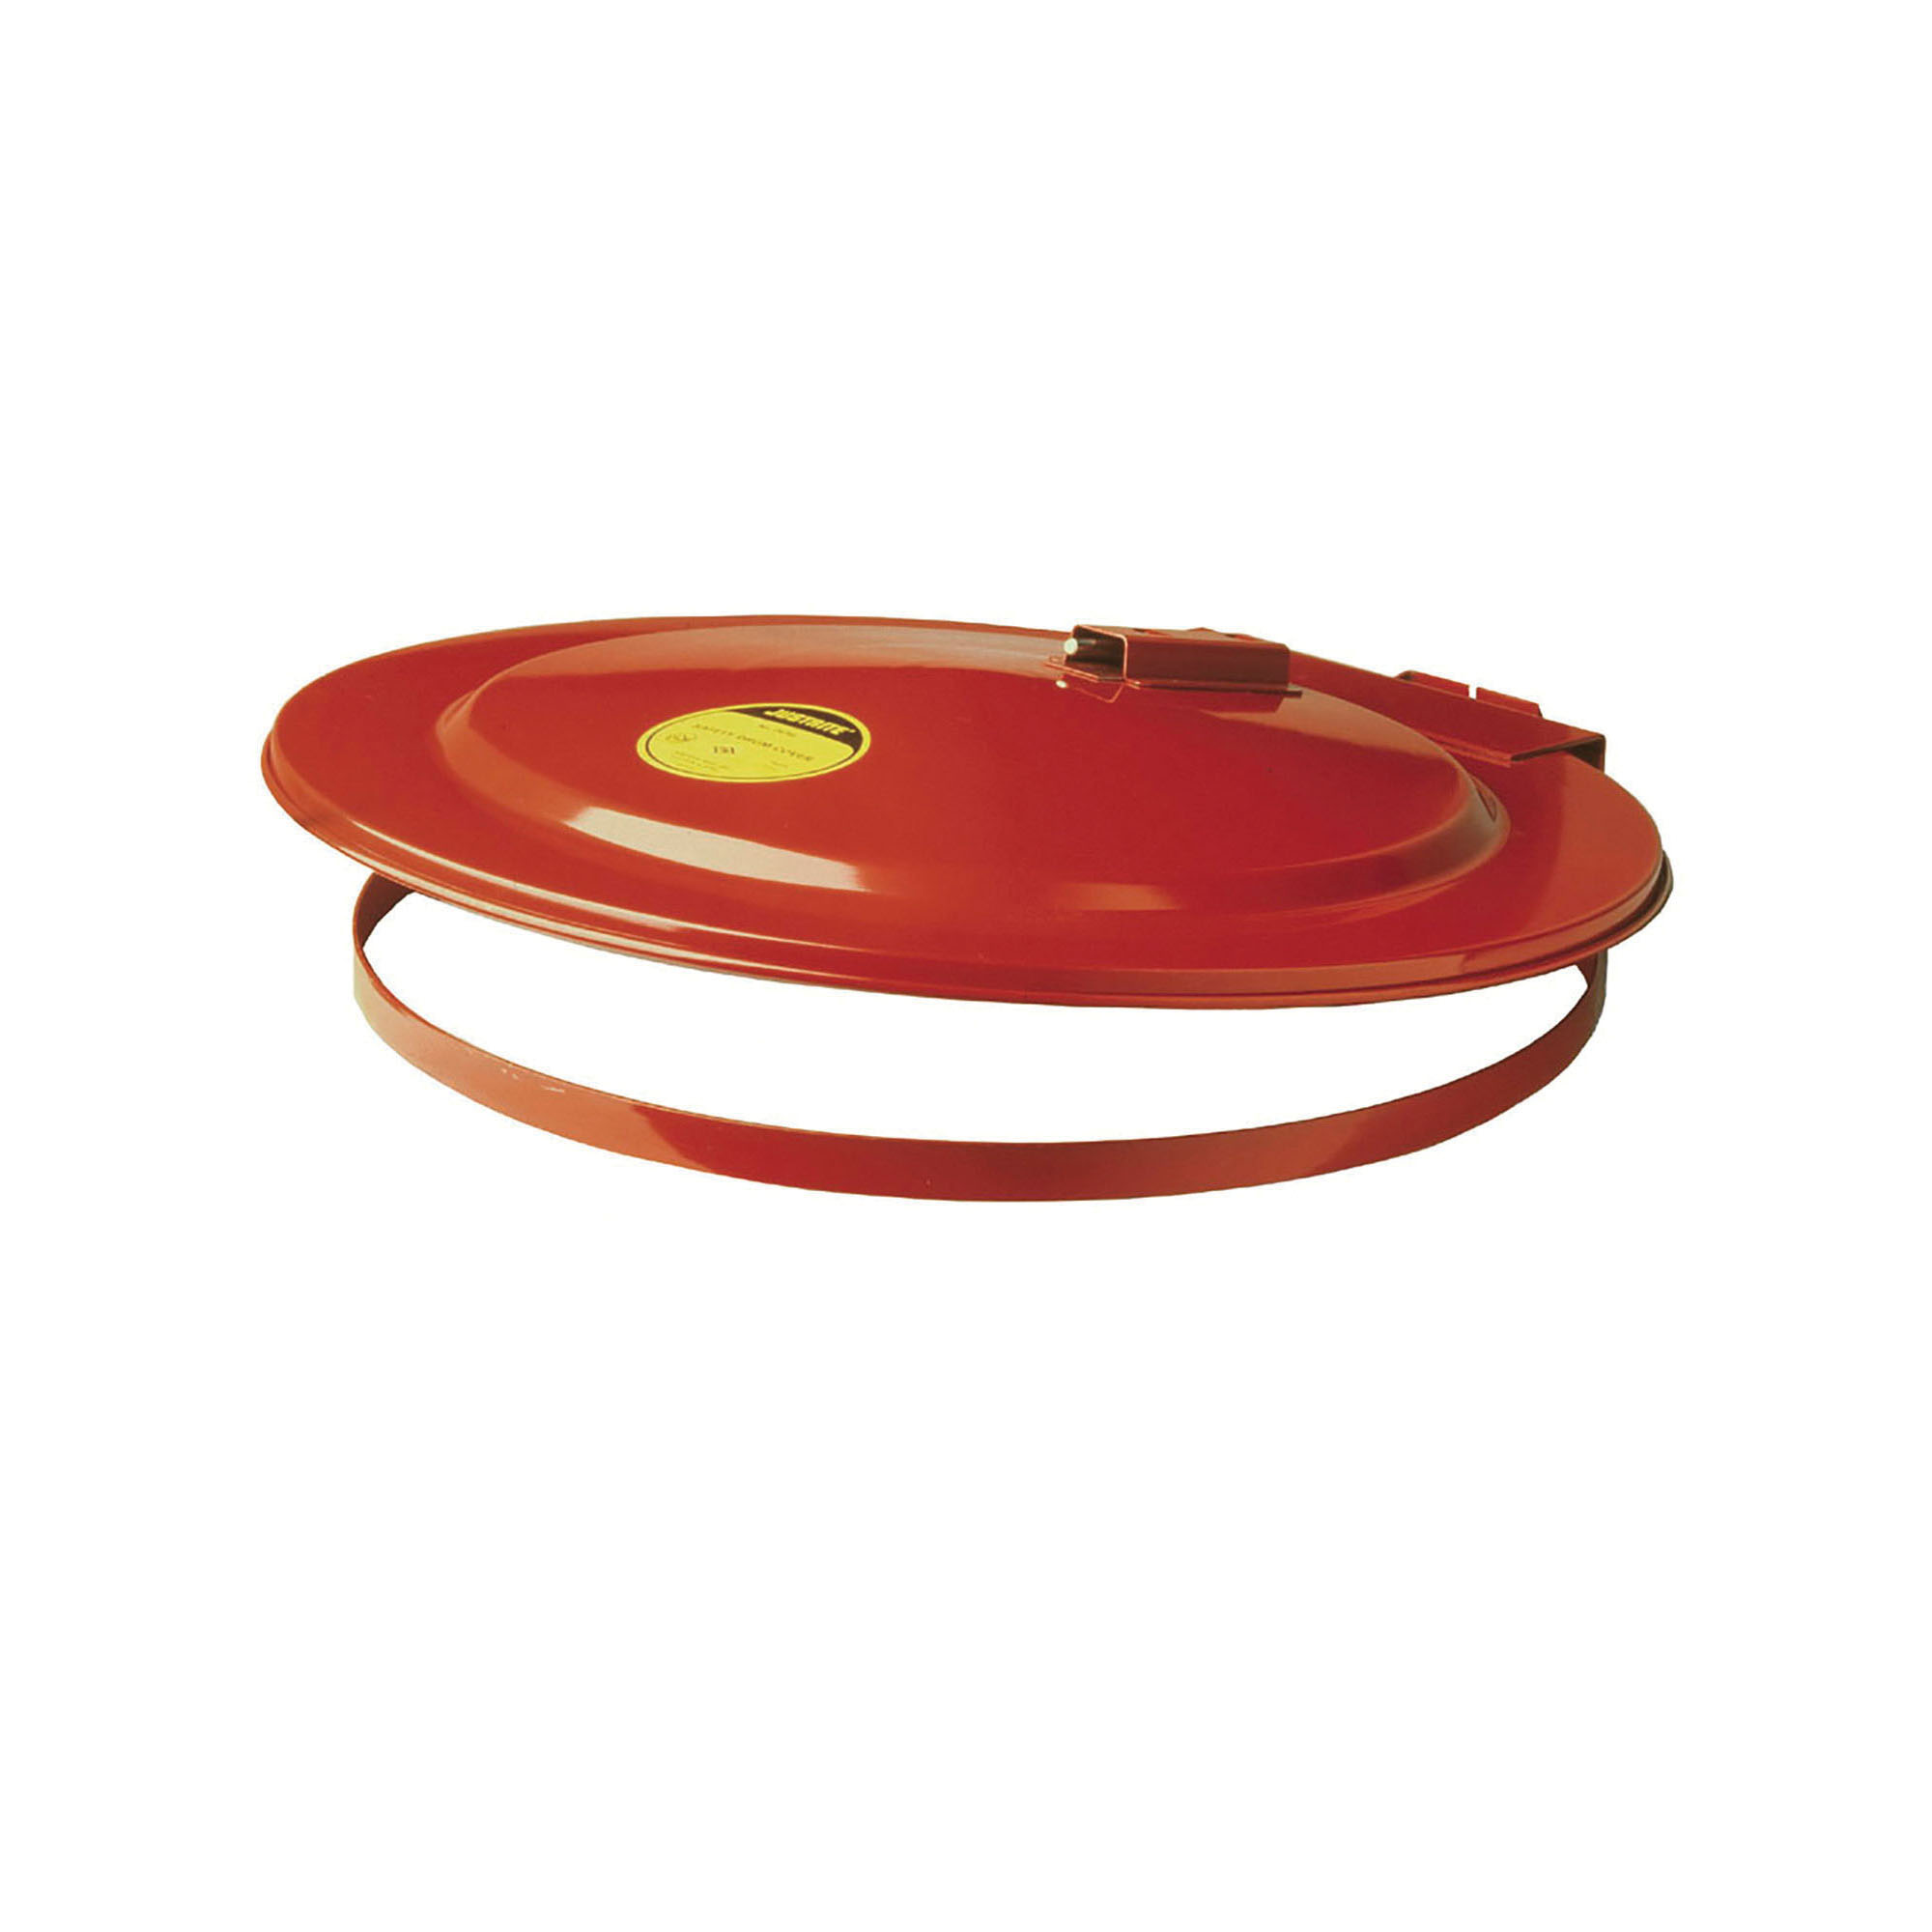 Justrite® 26750 Self-Closing Safety Drum Cover With Fusible Link, For Use With 55 gal Drums, Steel, Red